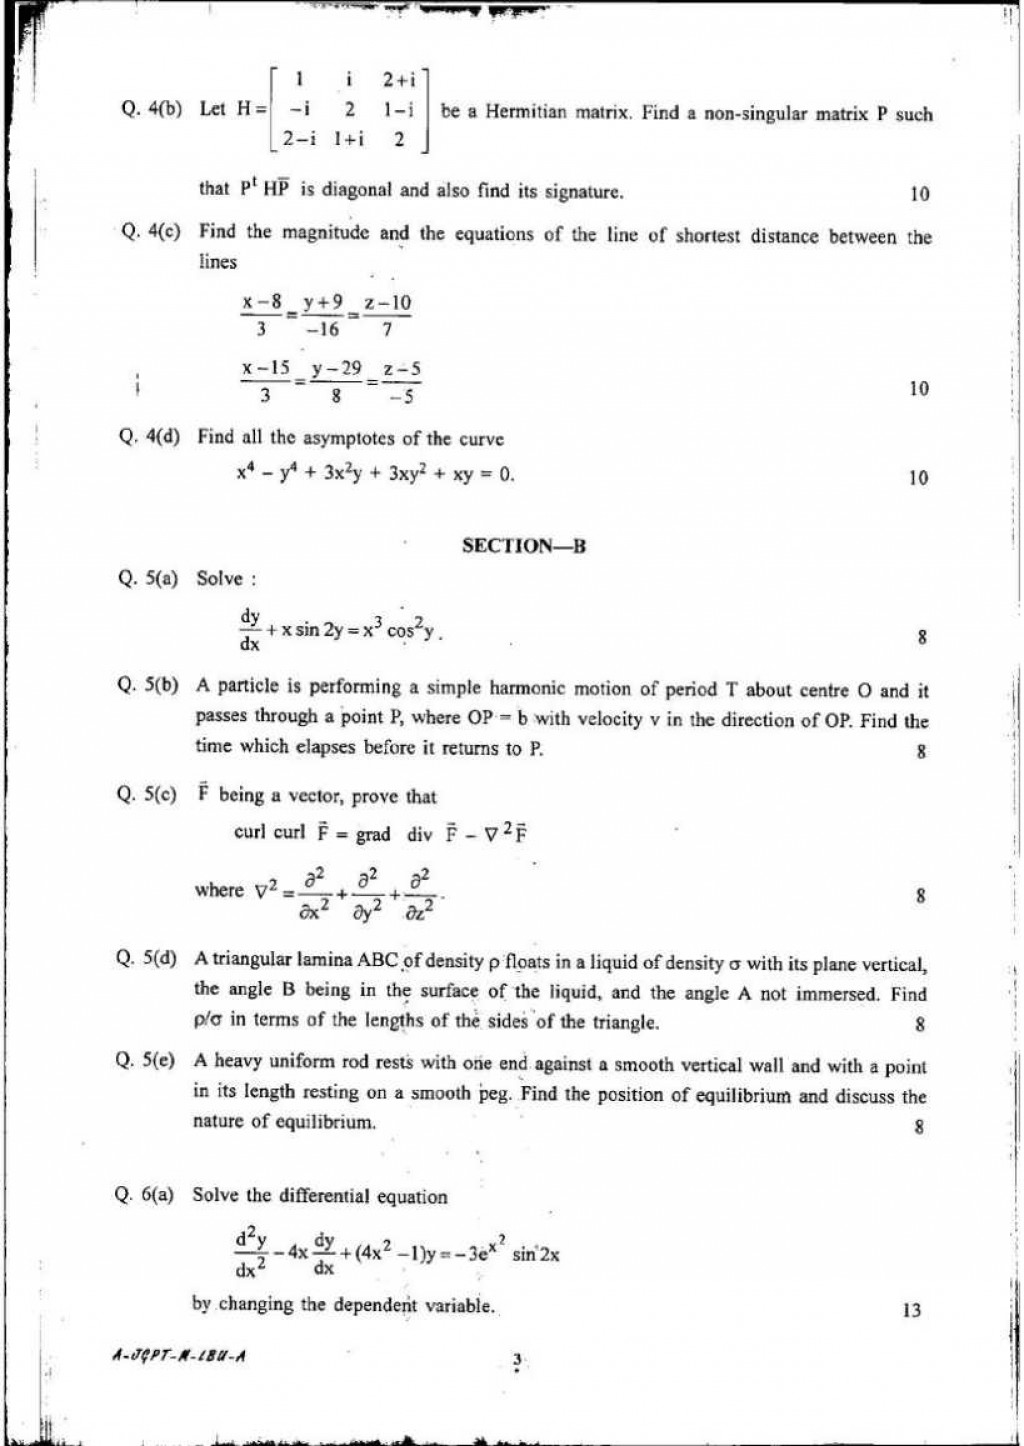 003 Environmental Science Research Papers Pdf Paper Maths Question Of Indian Forest Service Staggering Large